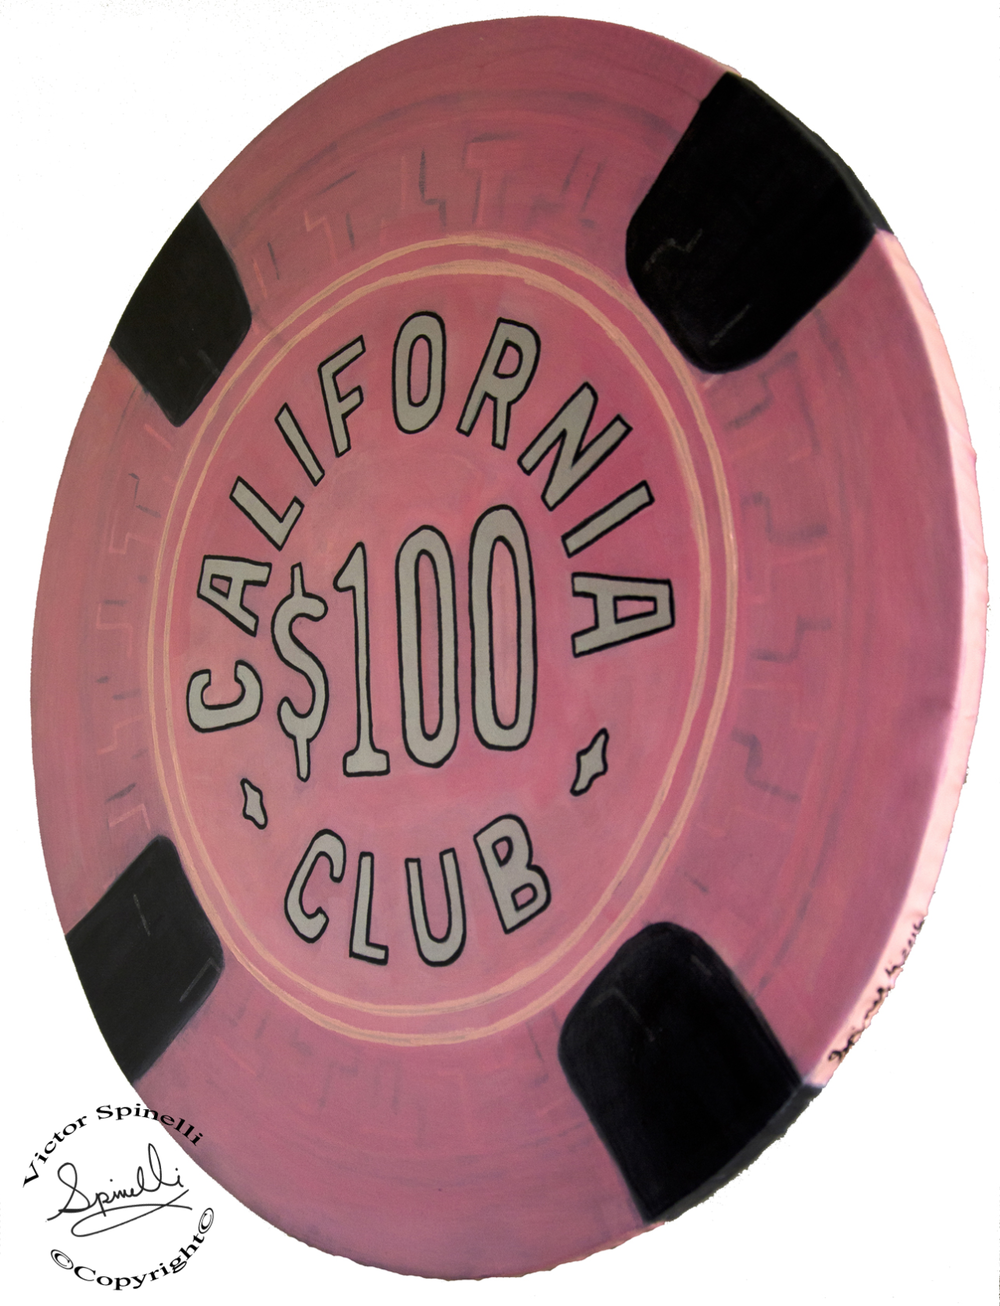 "In 1958 the California Club opened in Las Vegas on the corner of Fremont Street. This is yet another art piece from my giant ""Casino Chip Series"". Painted with acrylic on solid wood (24 inch diameter X ¾ inch thick).  Ready to hang in your entertainment room. In 1973 Wynn purchased the California Club and it then merged with the Golden Nugget. Hand painted unique piece. More of these fun pieces can be seen here:   http://www.victorspinelli.com/#/casino-chips/    Please inquire for SALES at Hello@SPiNgalleries.com"